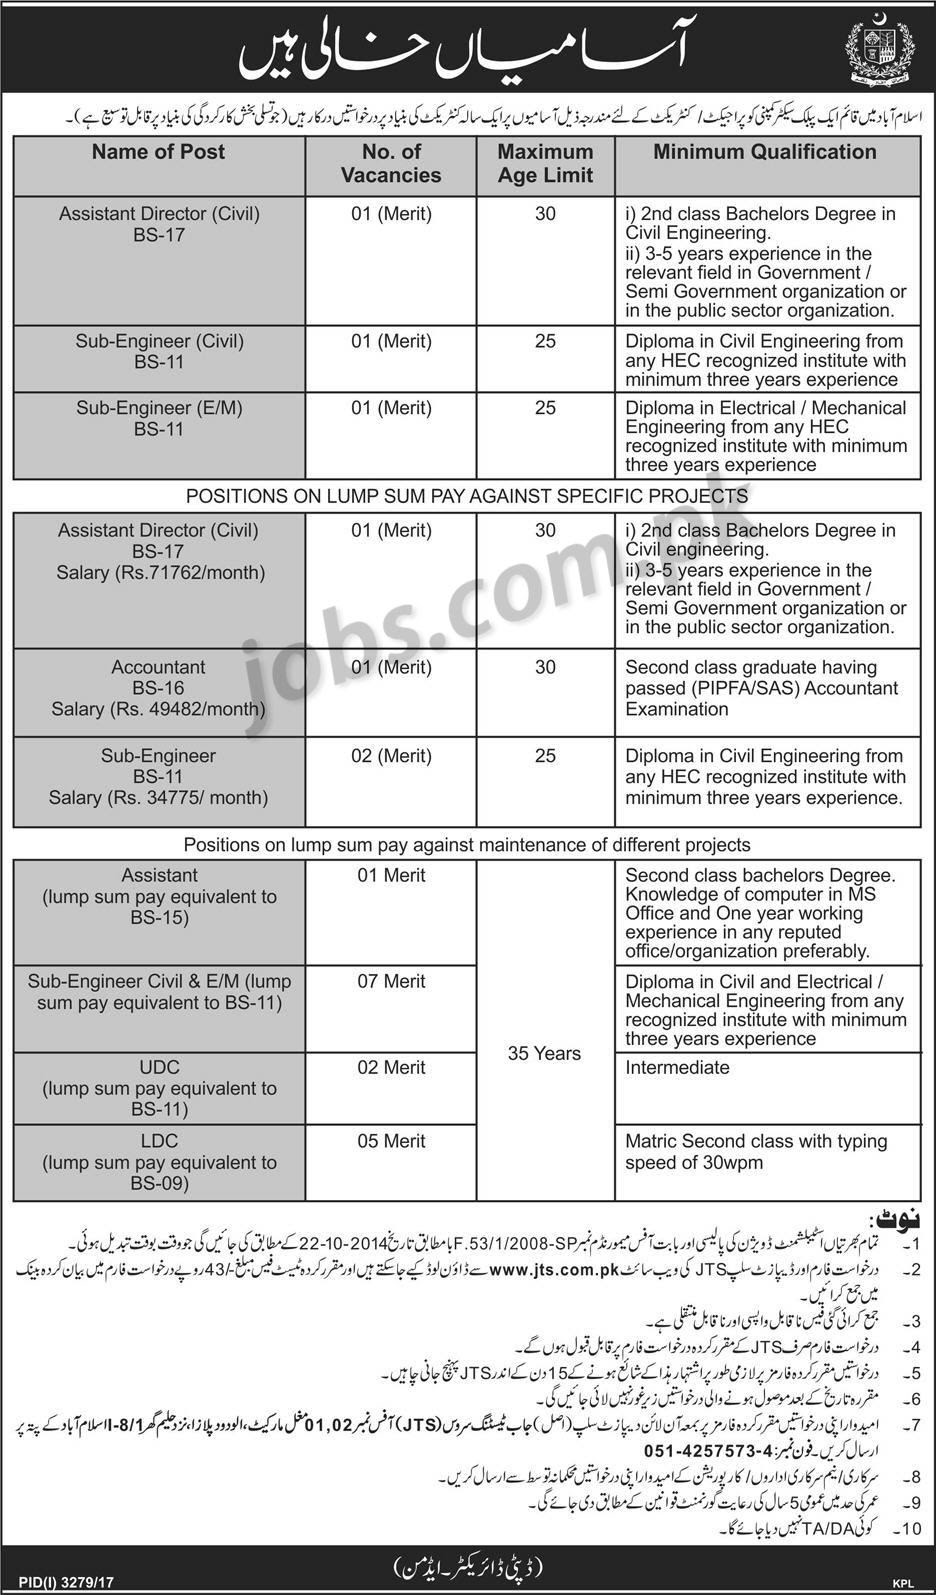 Federal Public Sector Organization Jobs